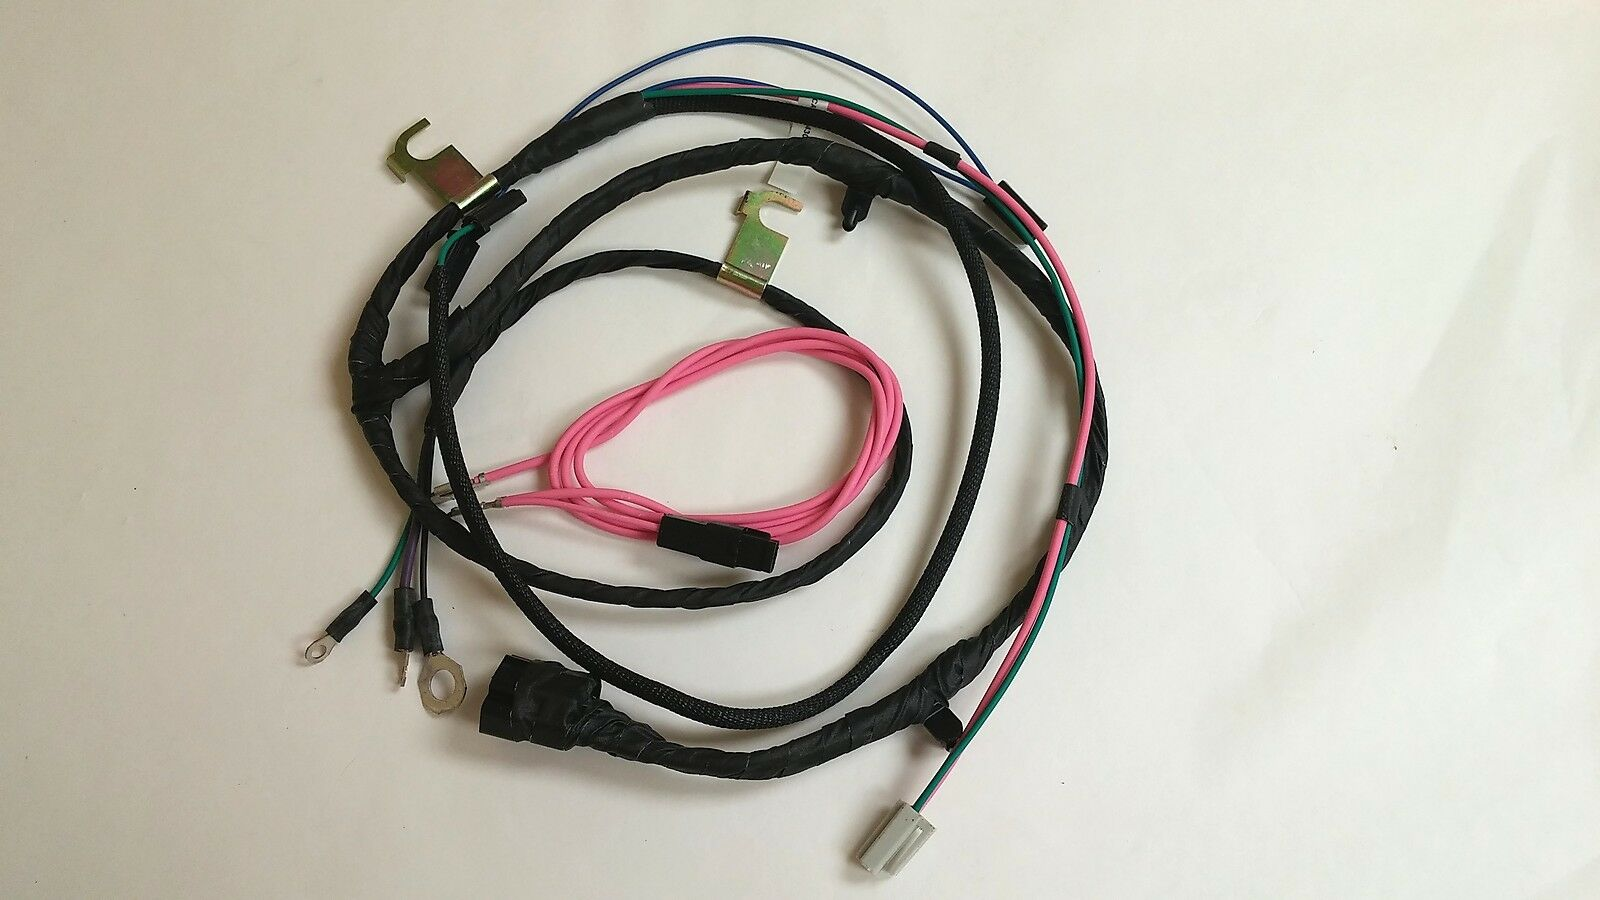 1 of 6Only 1 available 1963 Chevy Pickup Truck Engine Wiring Harness HEI V8  Factory Gauges 283 ...